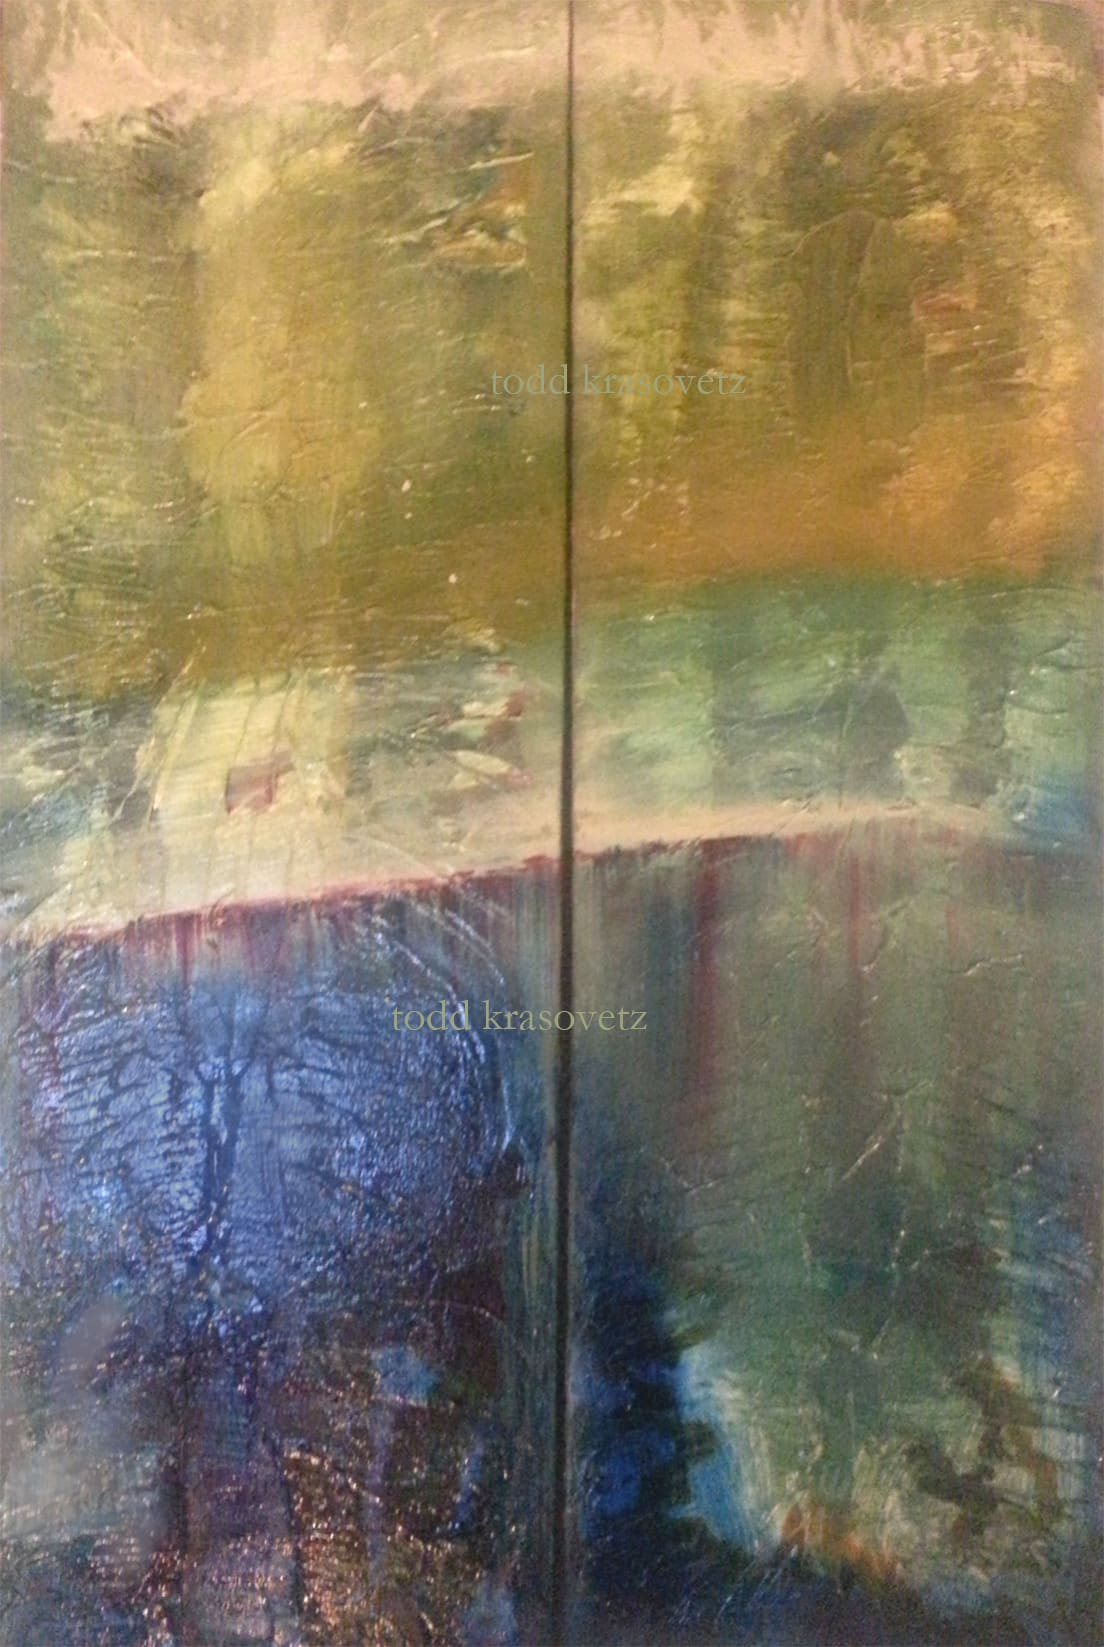 Featured Item Contemporary Abstract Art Diptych by Artist Todd Krasovetz titled Euphoric Dream Oil On Canvas